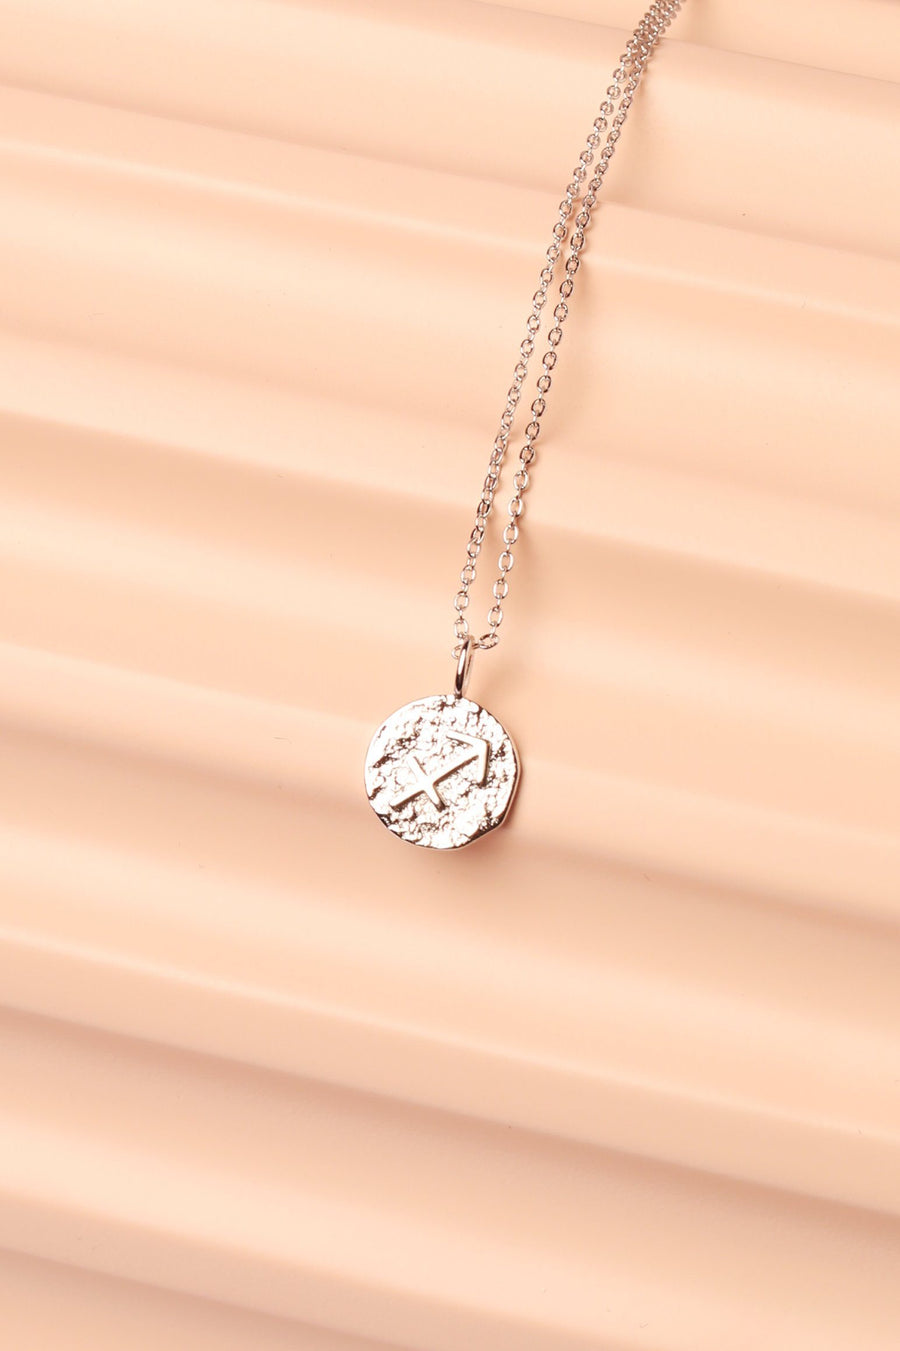 Silver Zodiac Charm Necklace Necklace Mulberry & Grand Sagittarius